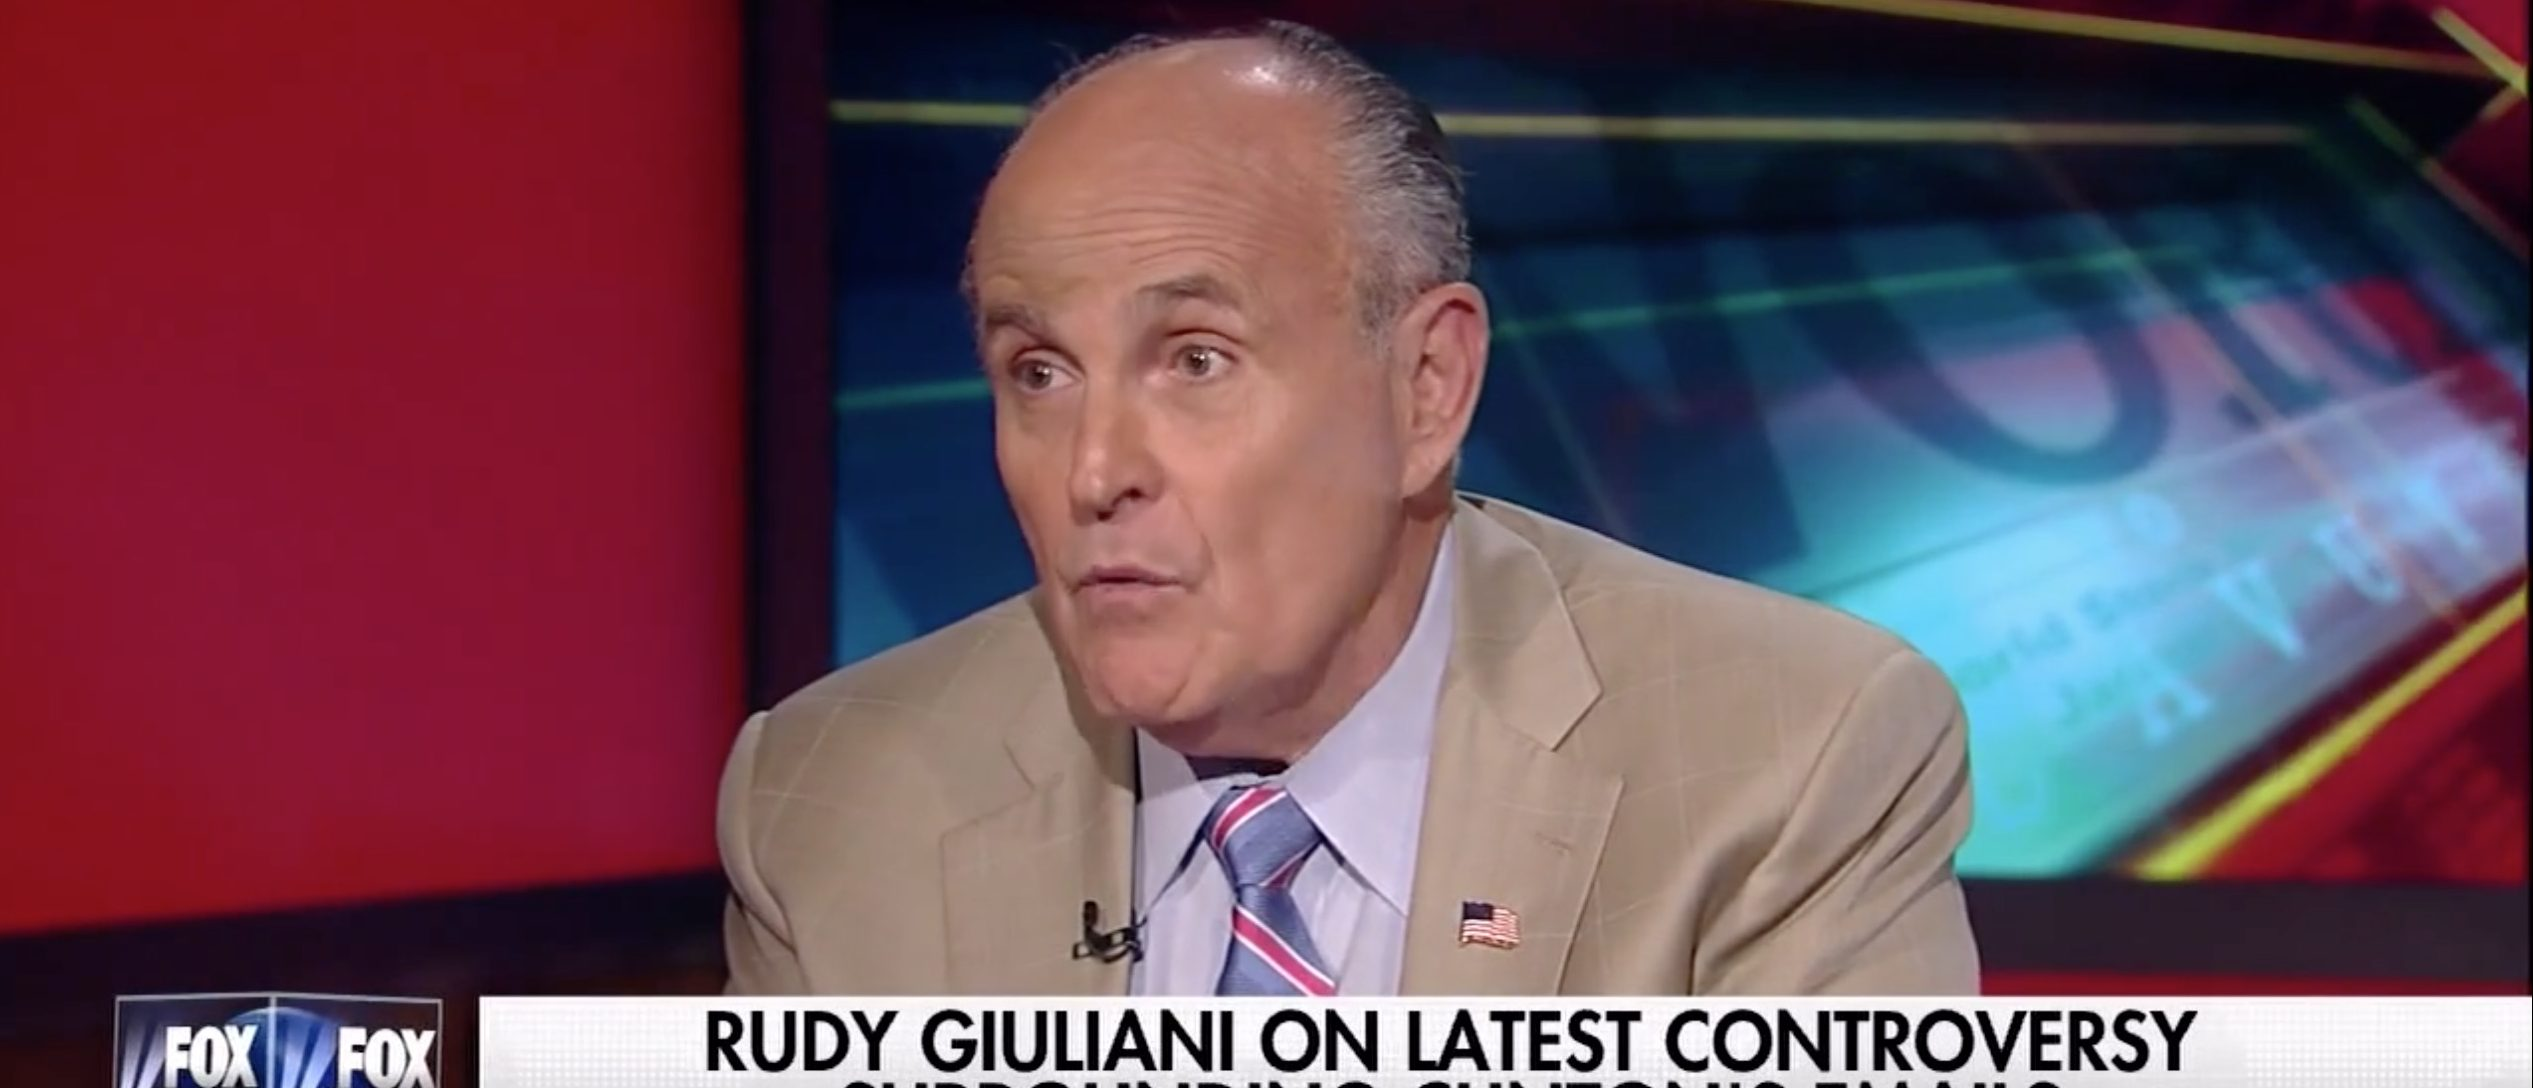 Rudy Giuliani, Screen Grab Fox News, 8-10-2016